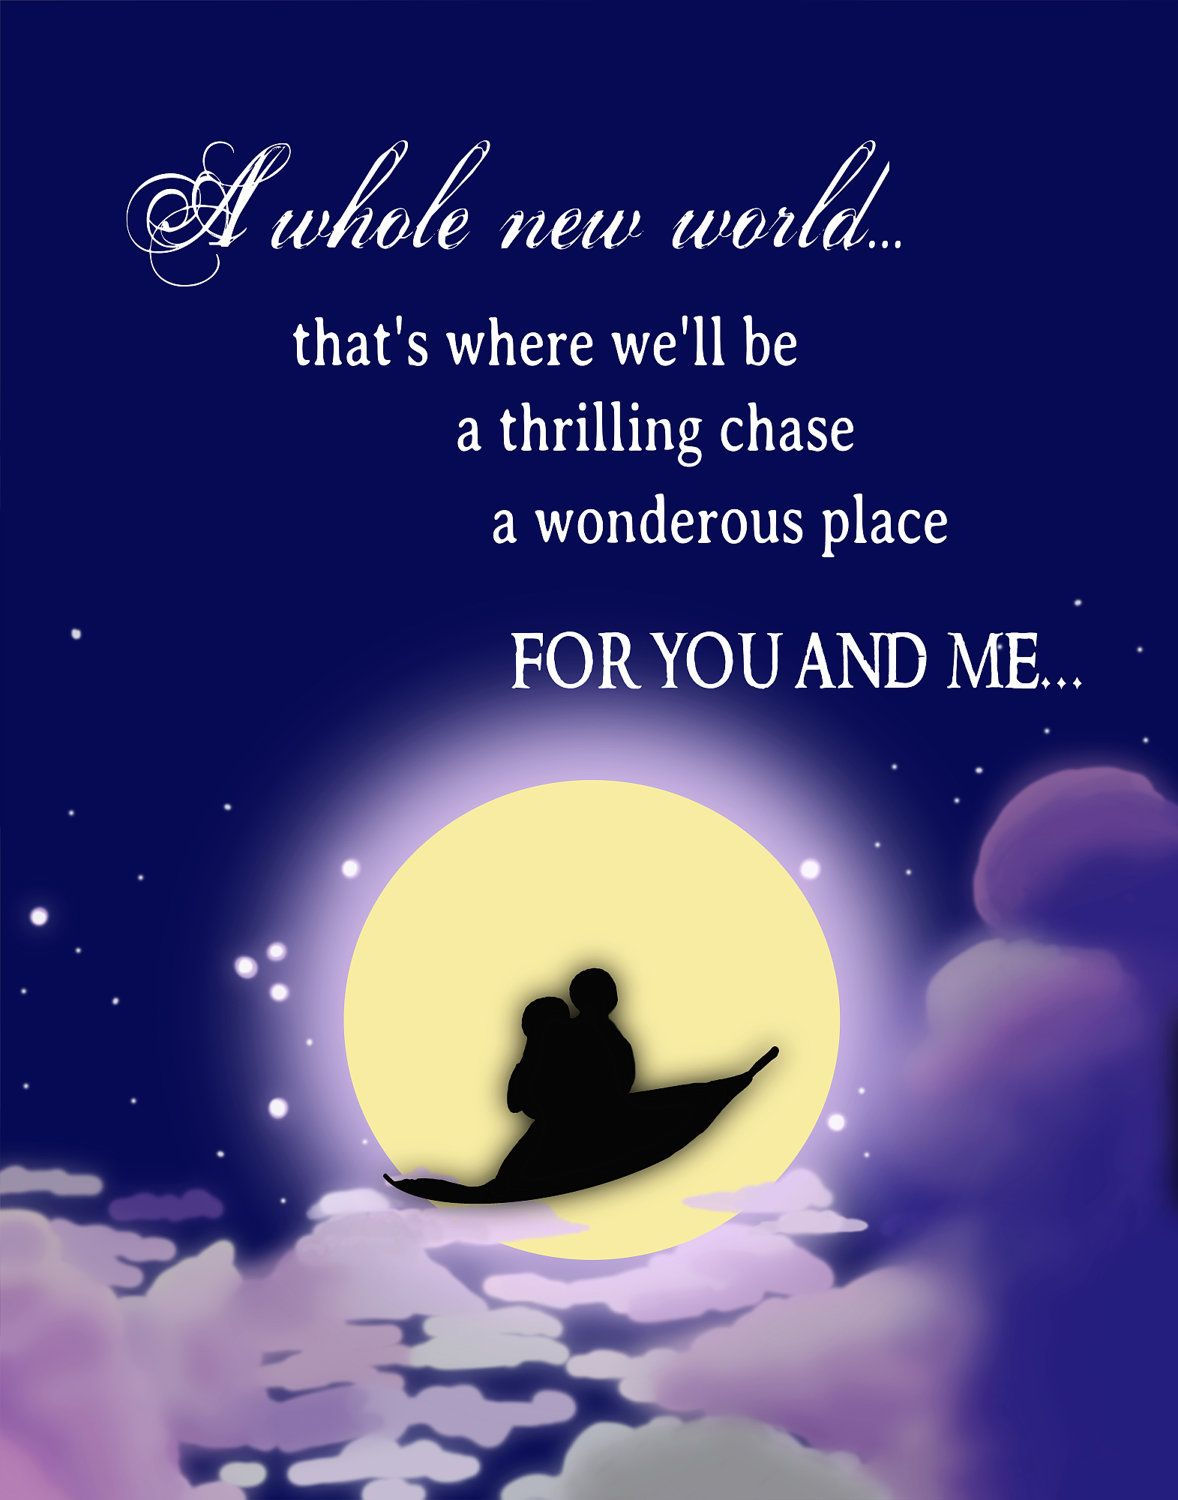 Magical Love Quotes Aladdin.wonderful Thinking Of A Magical Carpet Ride.day Dream